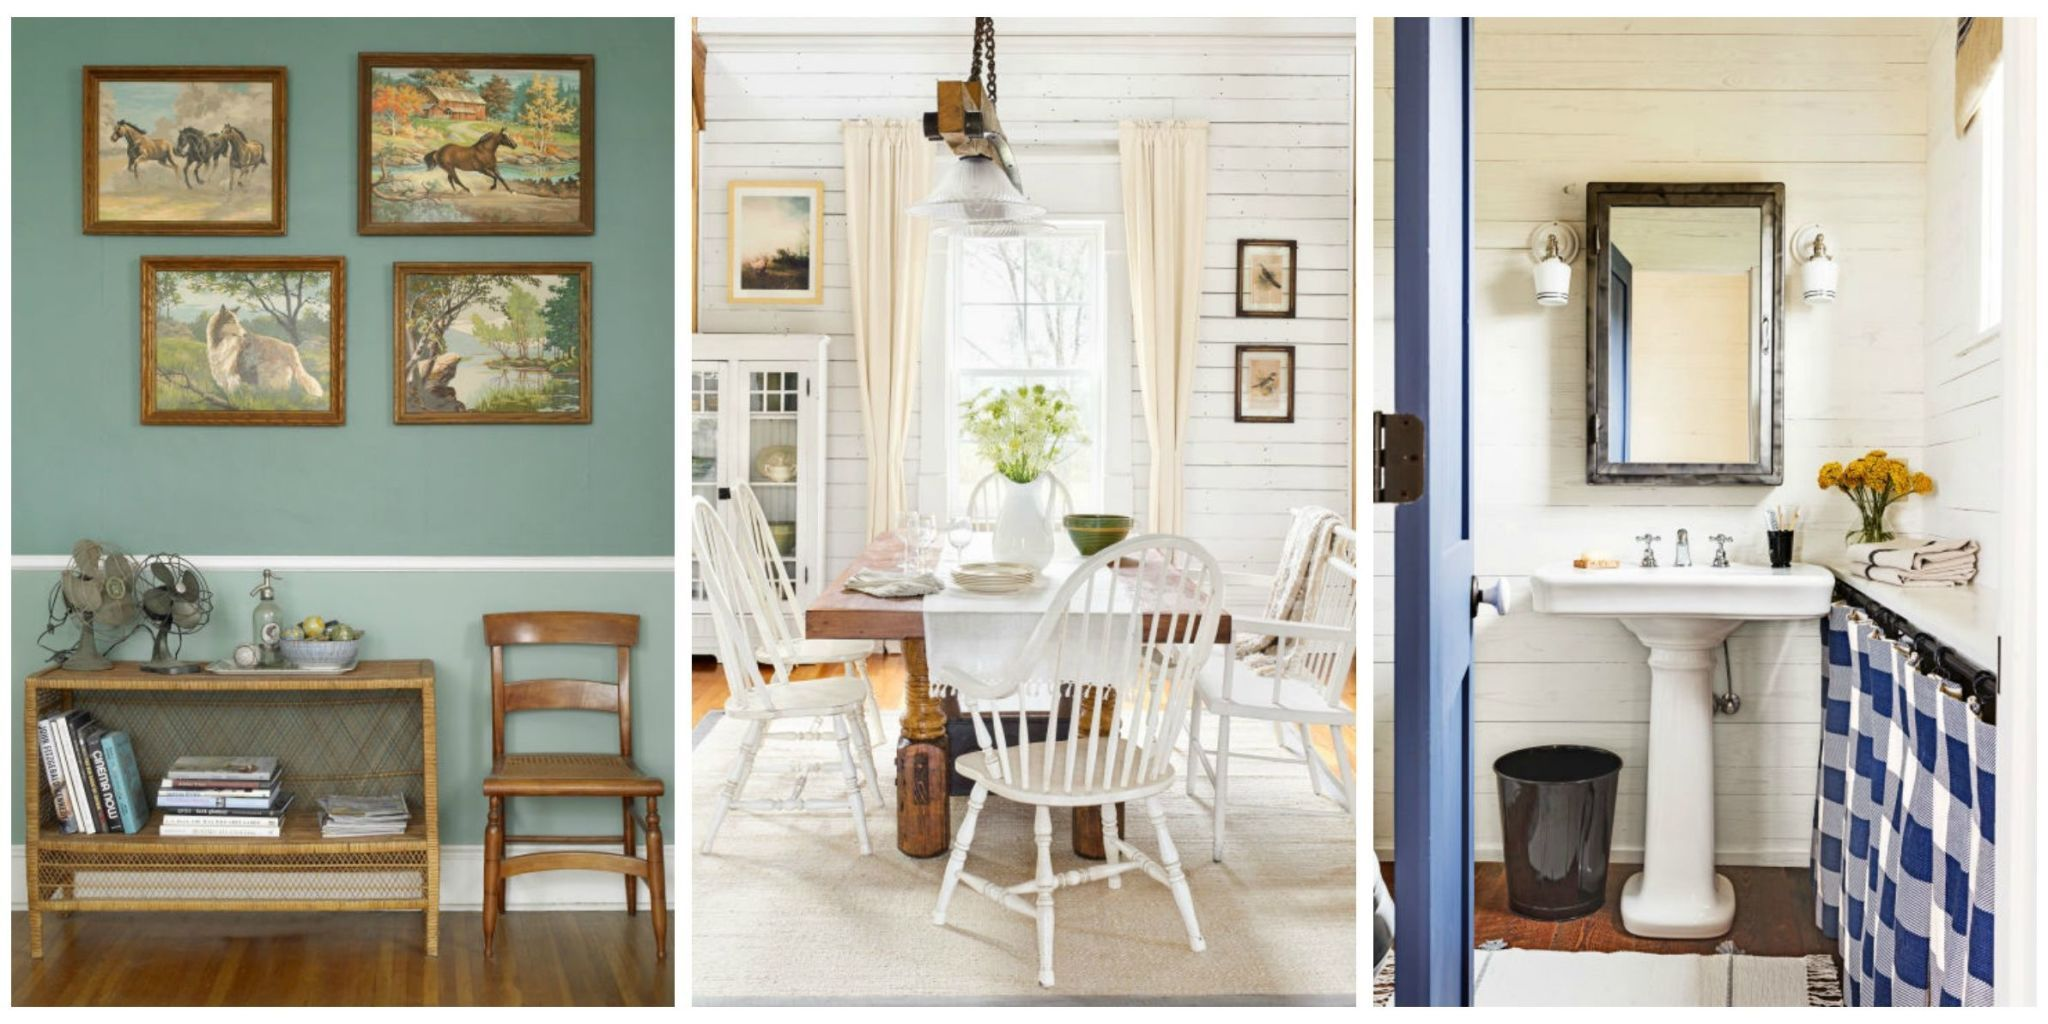 Merveilleux Small Decorating Projects Can Freshen Up Your Home And Be Inexpensive. Try  One Or Two Of These Budget Friendly Fixes For An Instant Update!